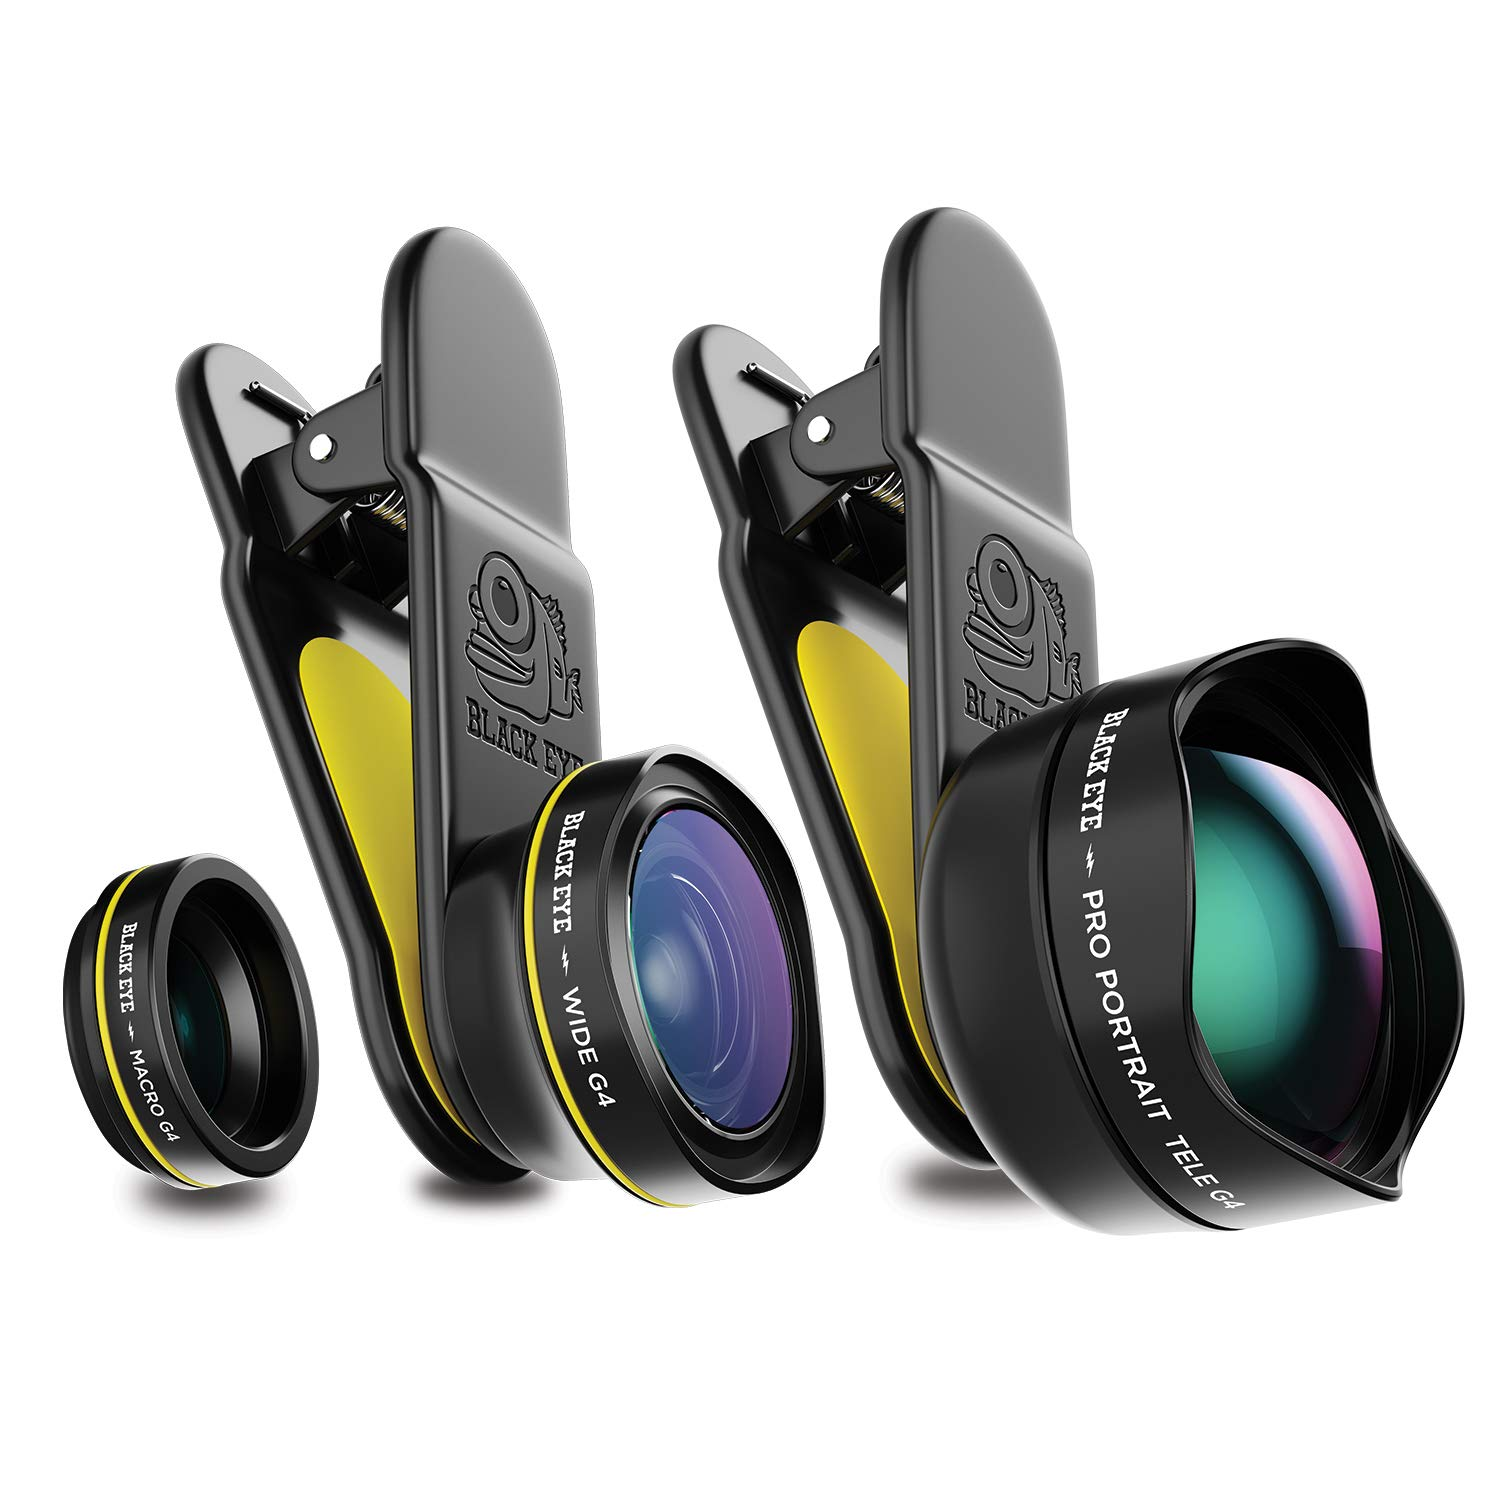 Phone Lenses by Black Eye    Travel Kit G4 Lens Compatible with iPhone, iPad, Samsung Galaxy, and All Camera Phone Models by BLACK EYE